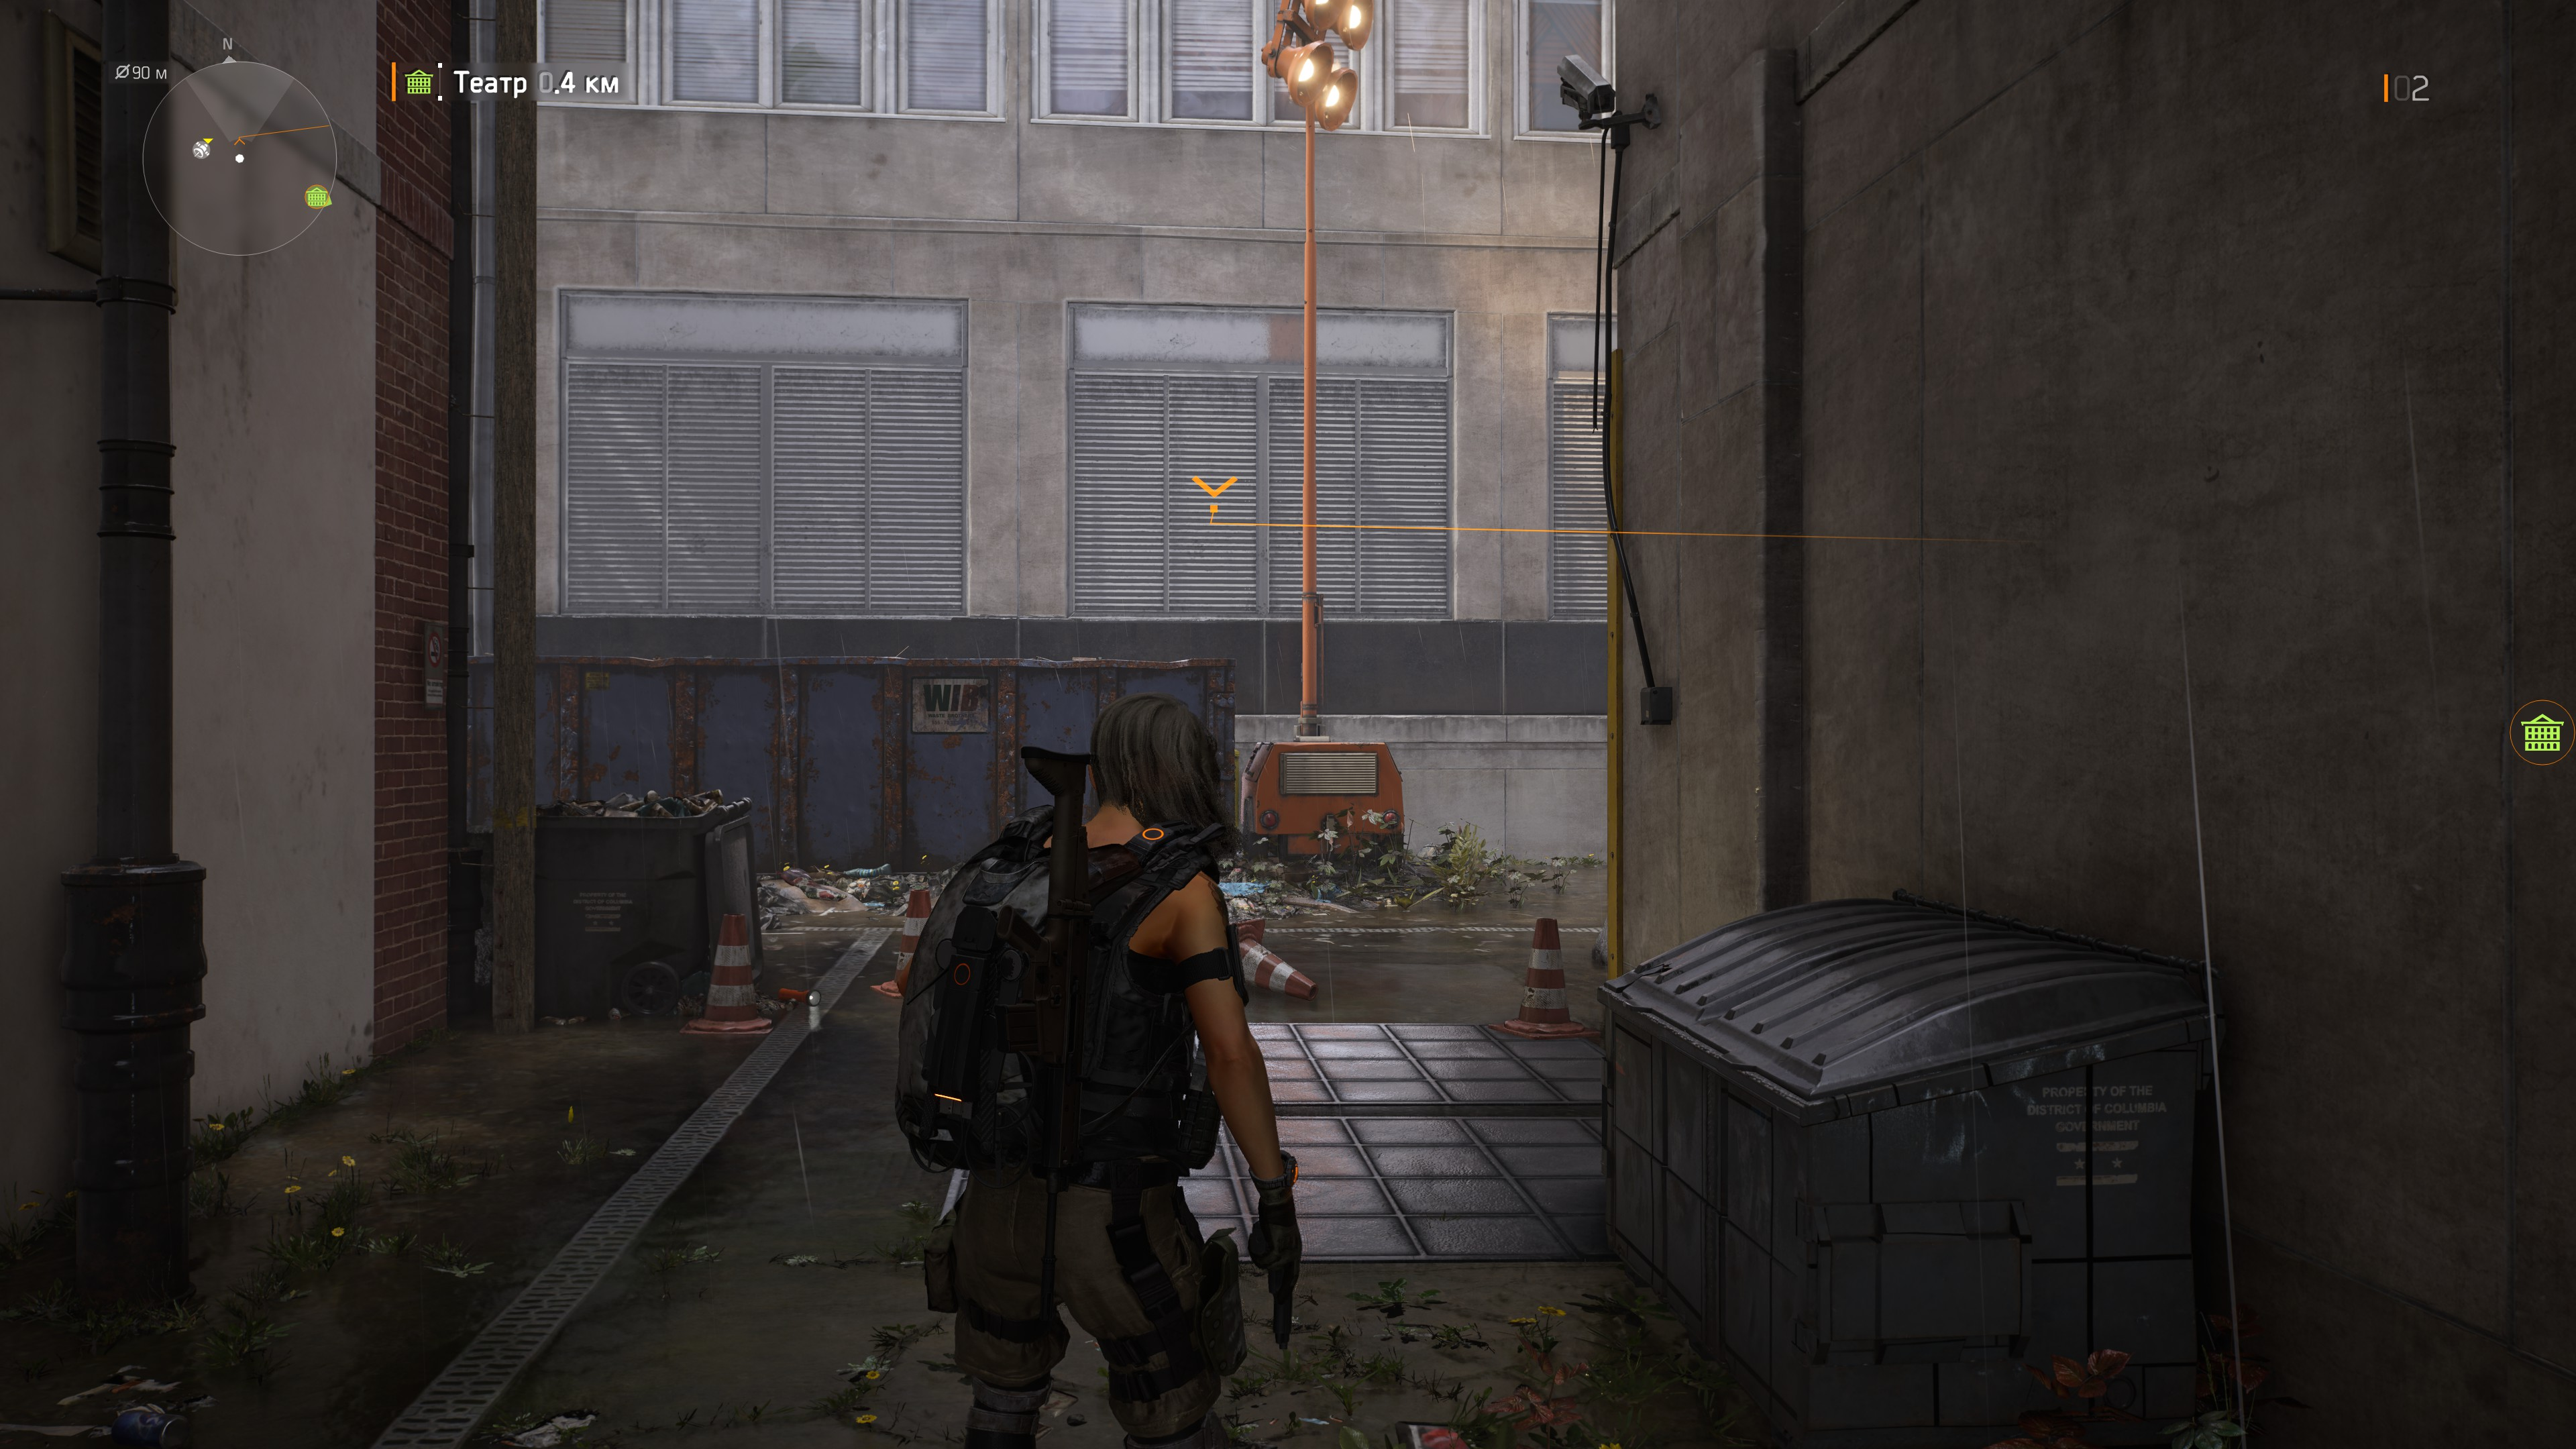 Tom Clancy's The Division® 22020-3-1-7-22-34.jpg - Tom Clancy's The Division 2